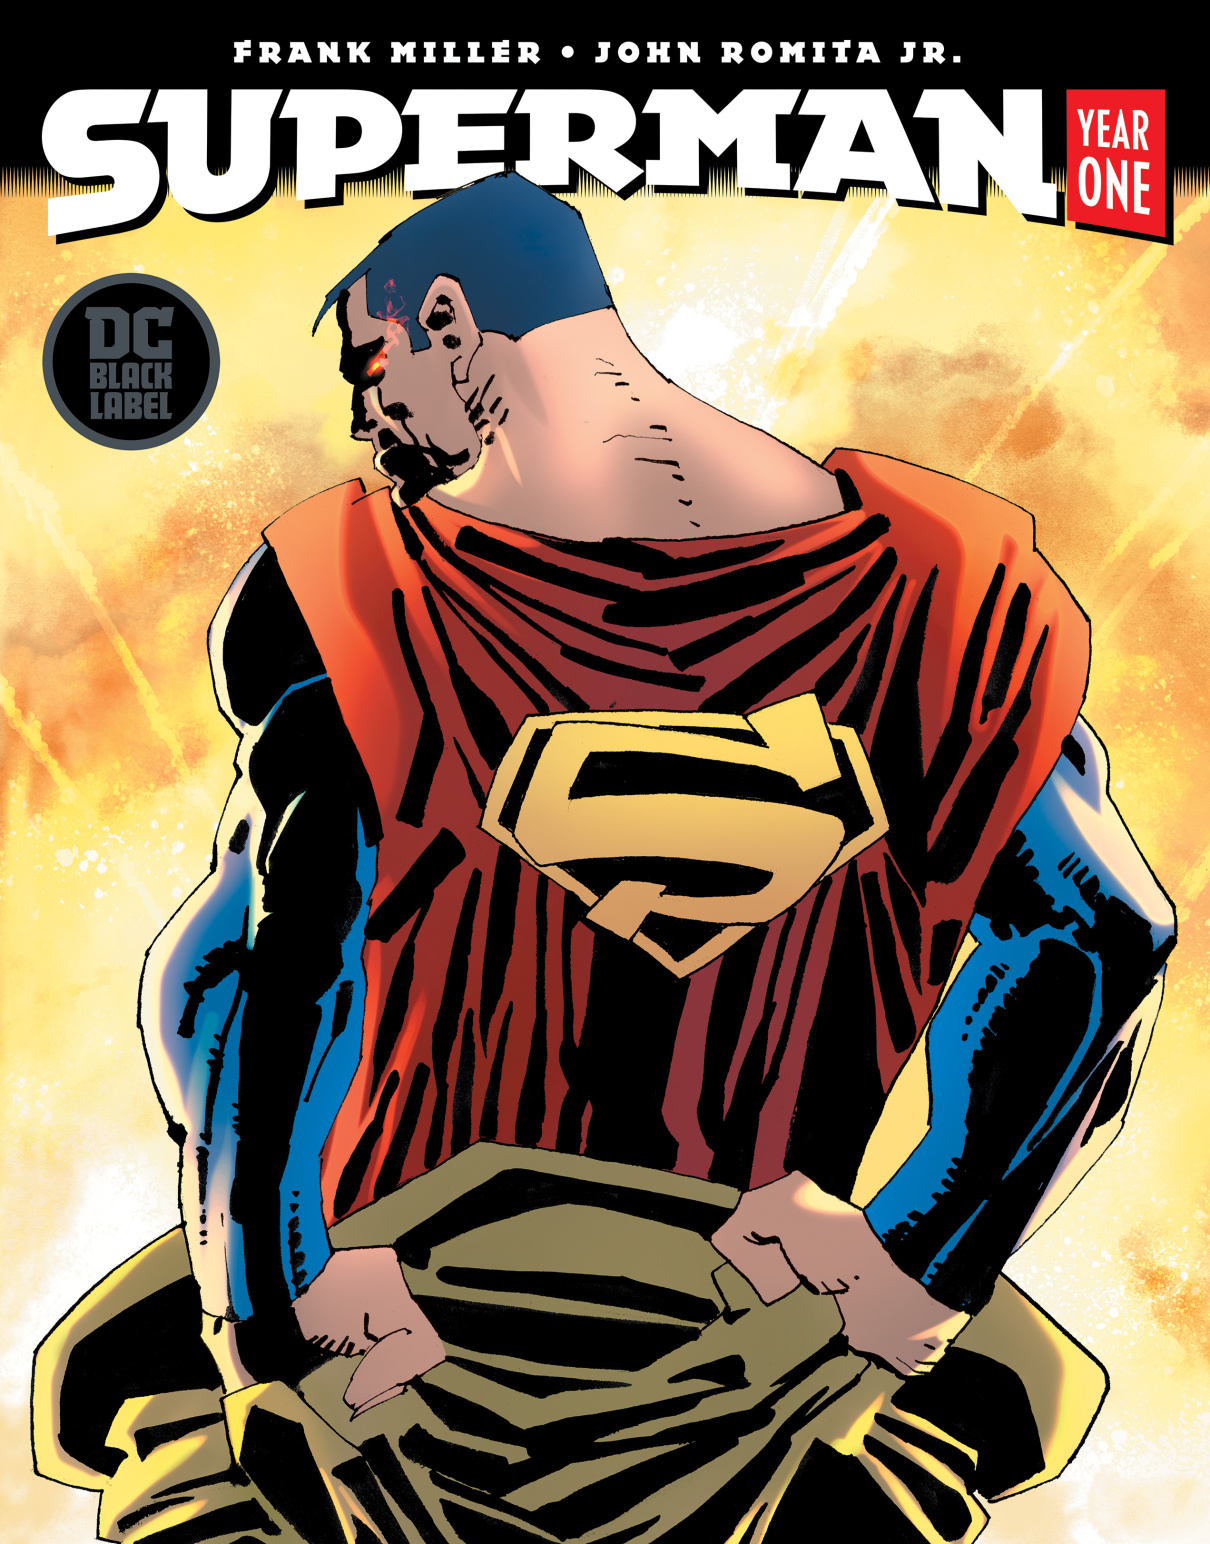 4_superman_year1_collection-1.jpg